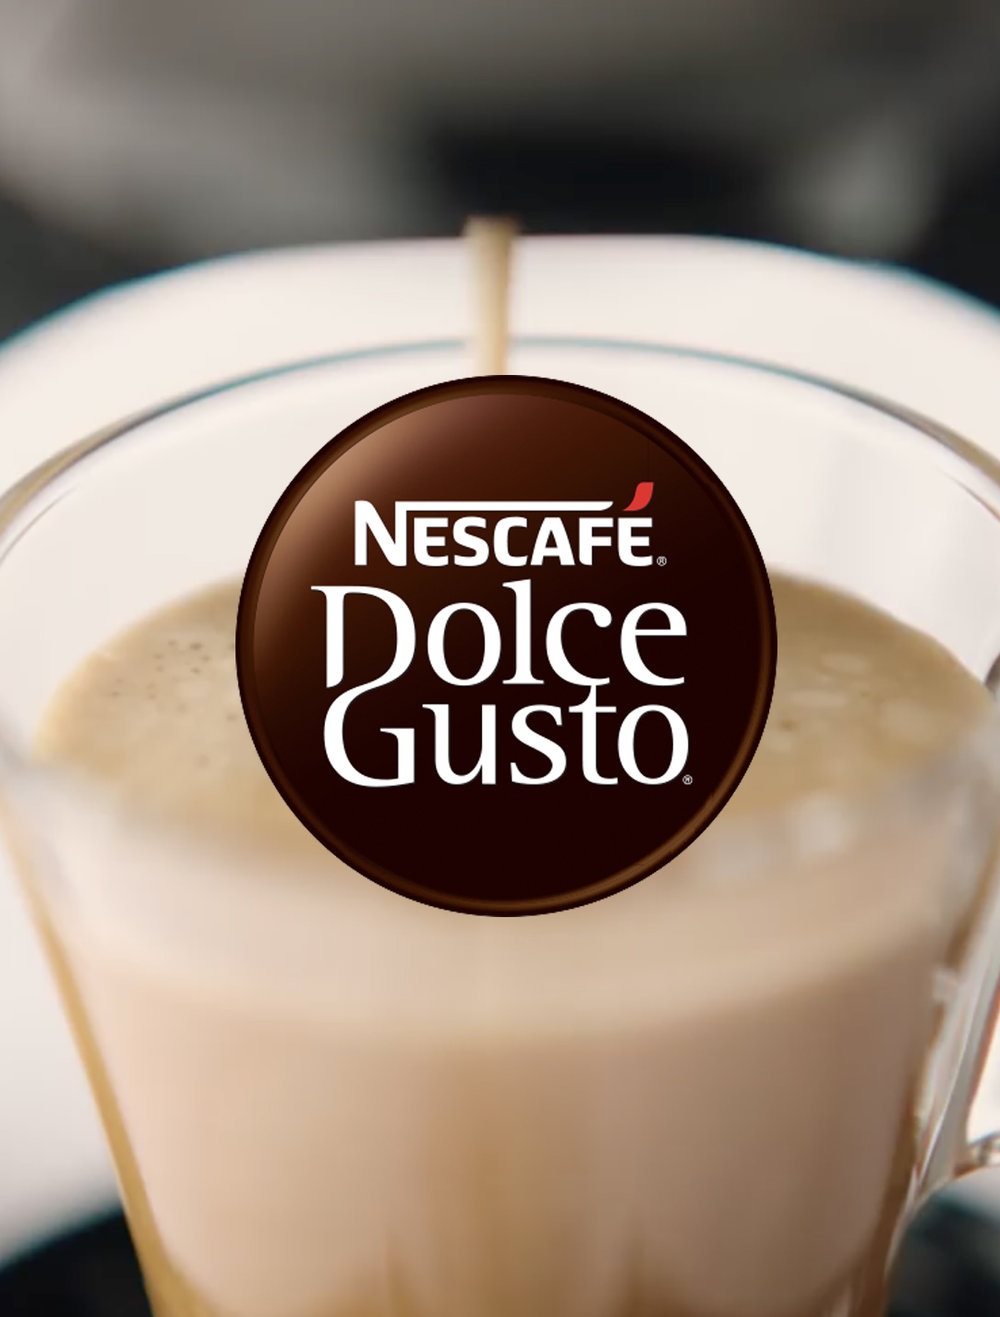 NESCAFE  Promotional Video